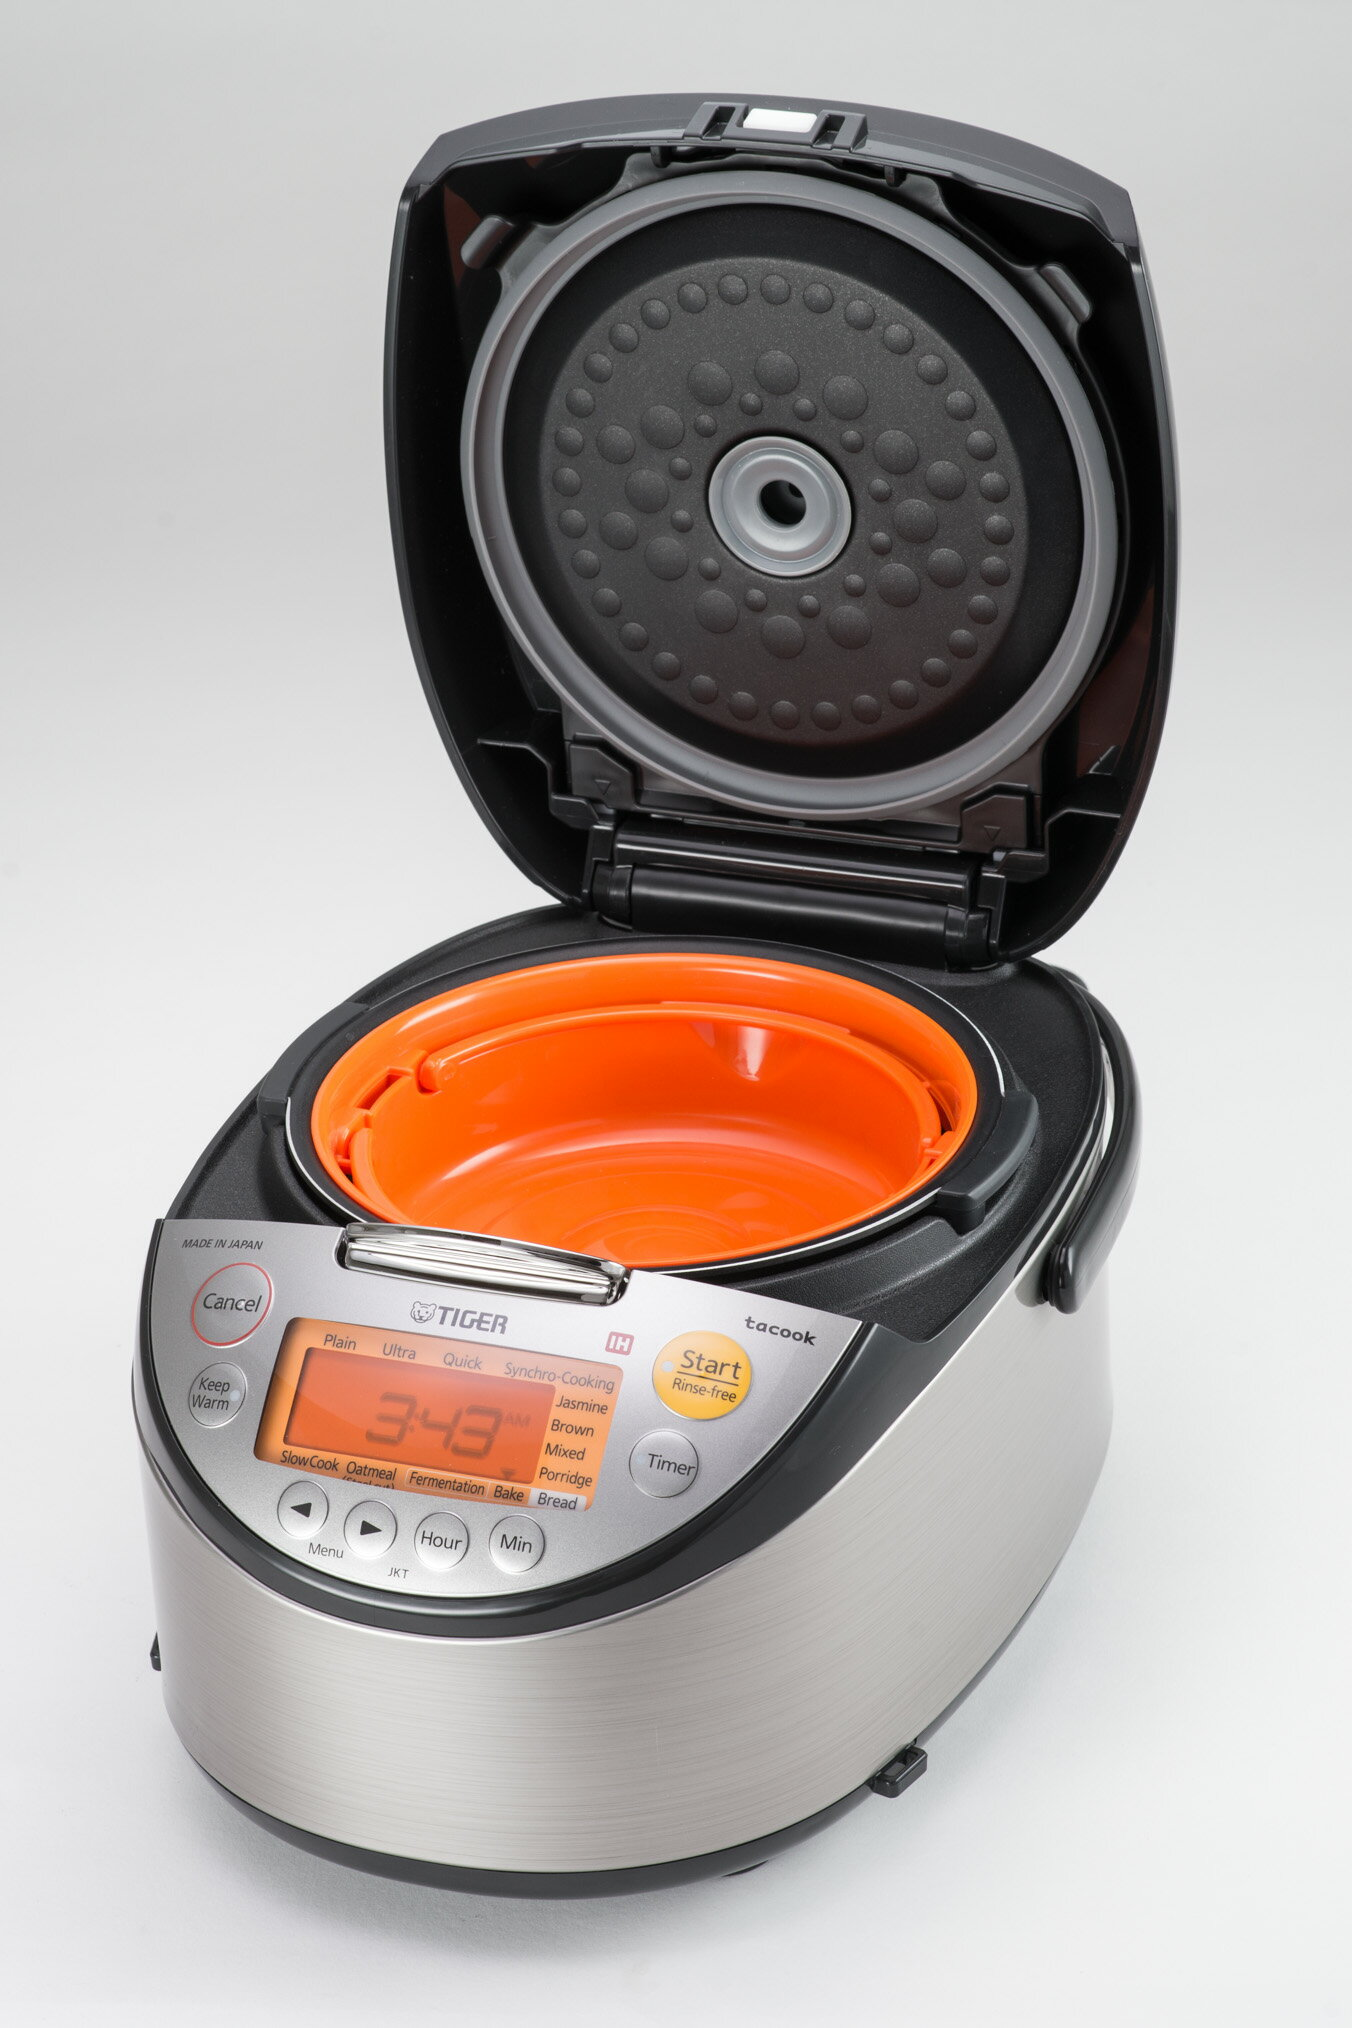 Tiger Corporation Jkt S Series Induction Heating Multi Functional Rice Cooker With Tacook Plate 2